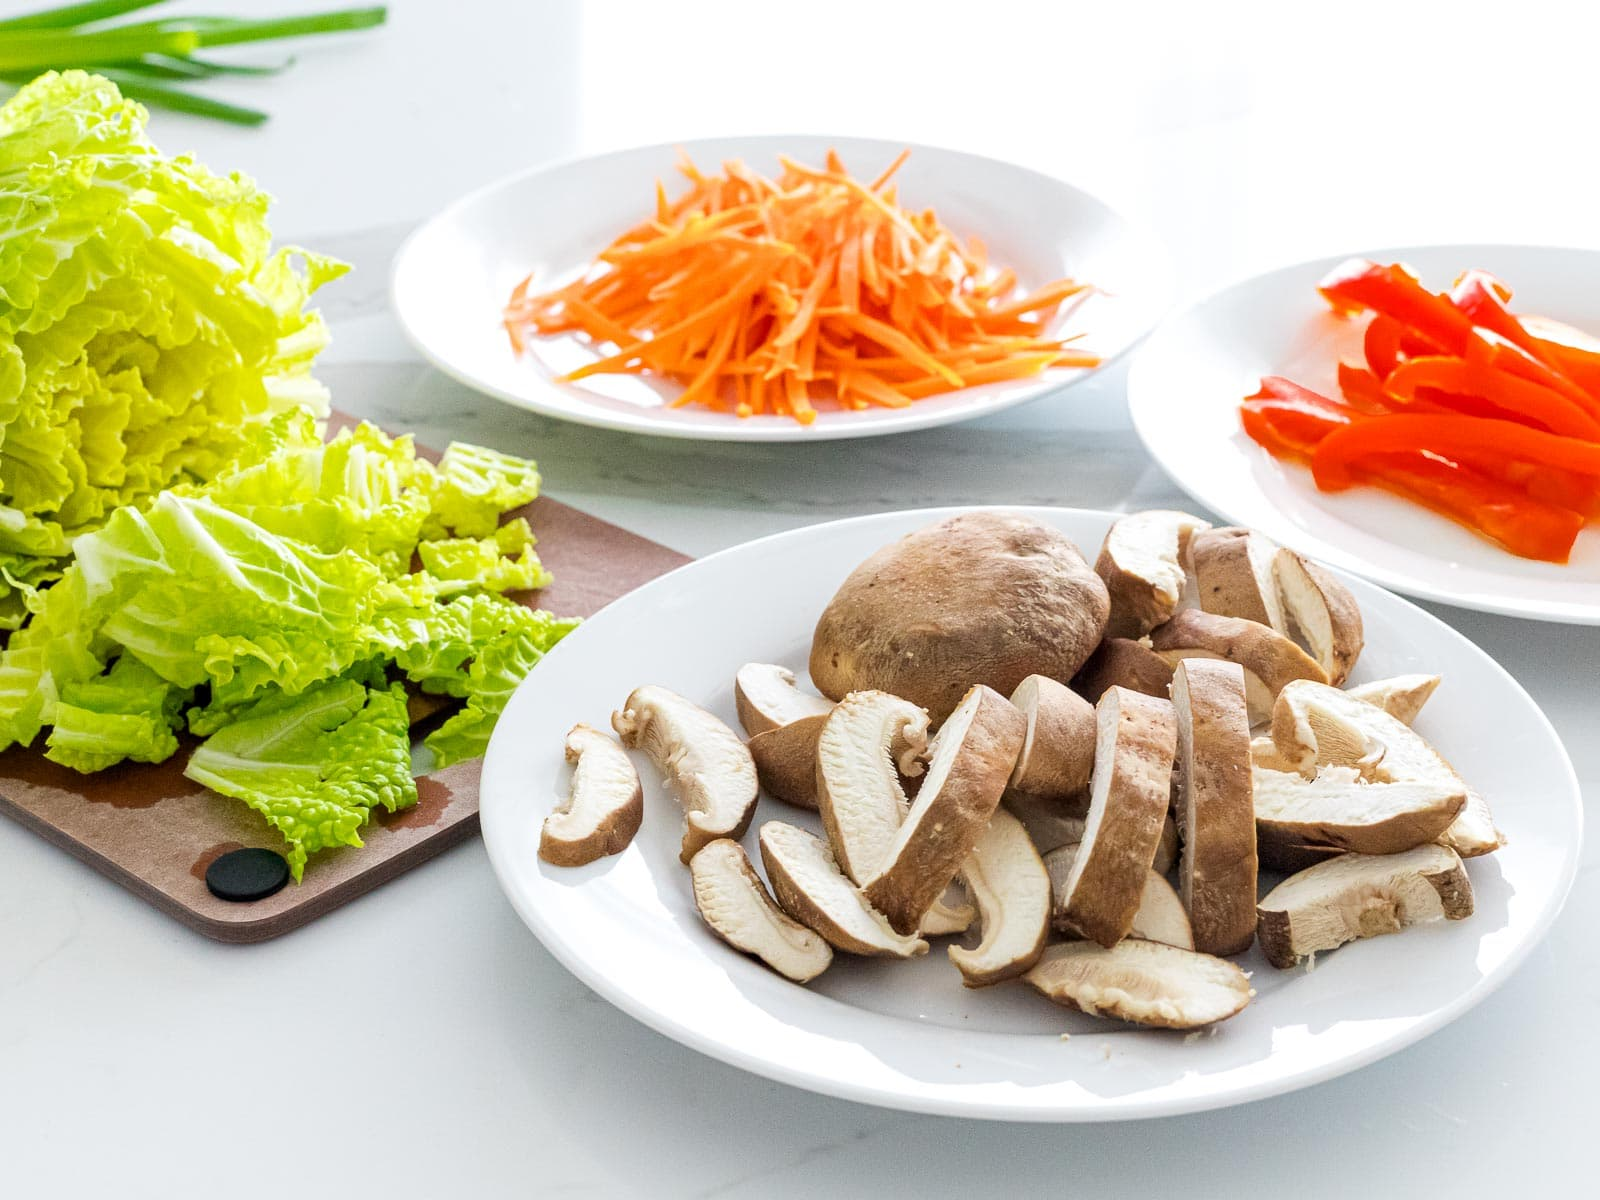 sliced shiitake mushrooms, chopped cabbage, julienned carrots and red peppers on white plates